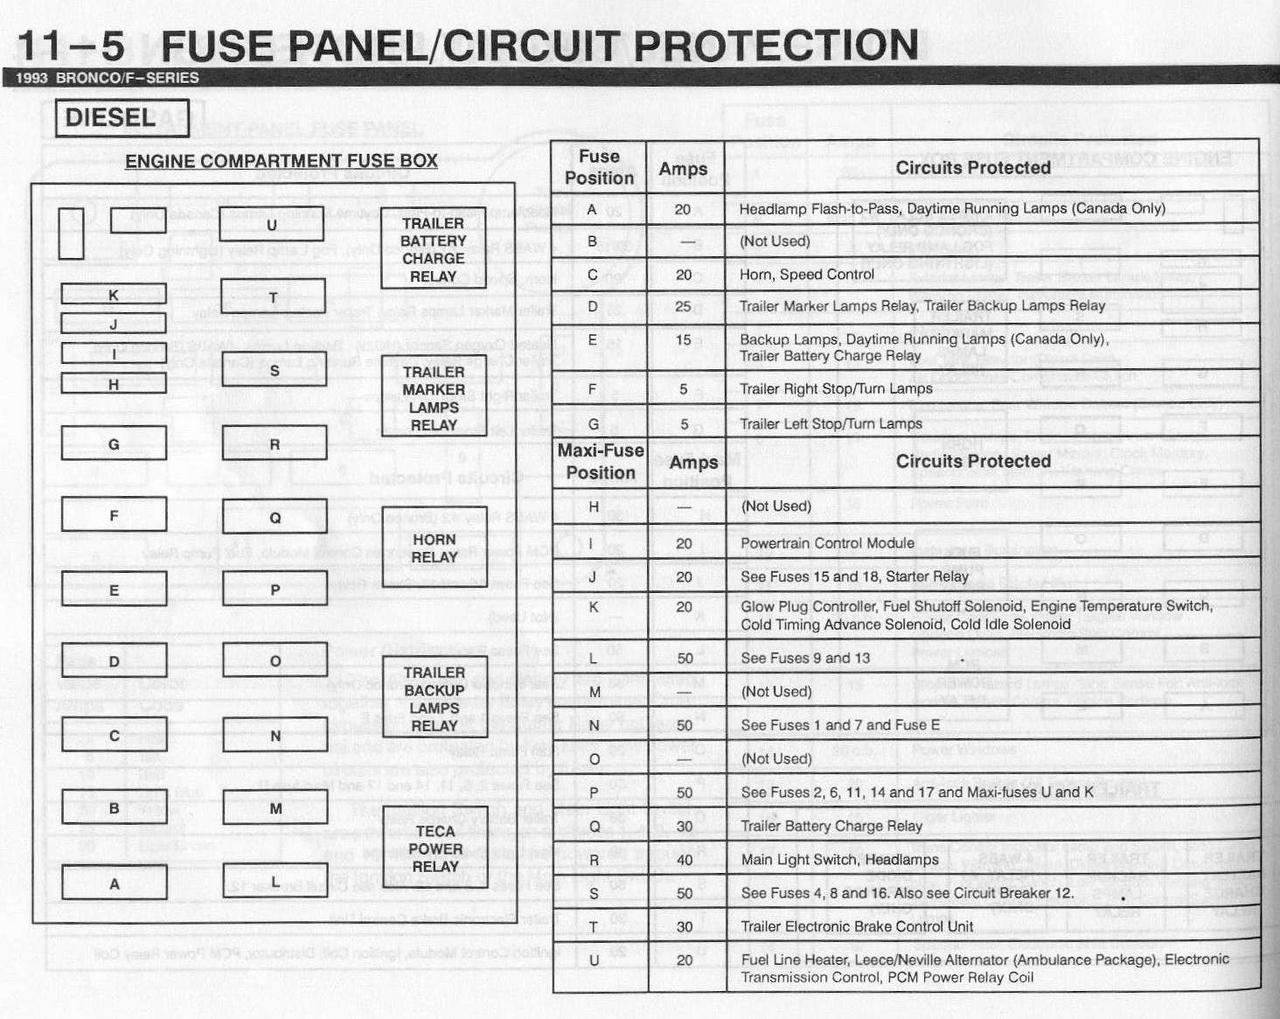 Fuse Box Diagram For 1996 Ford F250 Best Secret Wiring 1988 Contour 7 3 Powerstroke Get Free Image About 1994